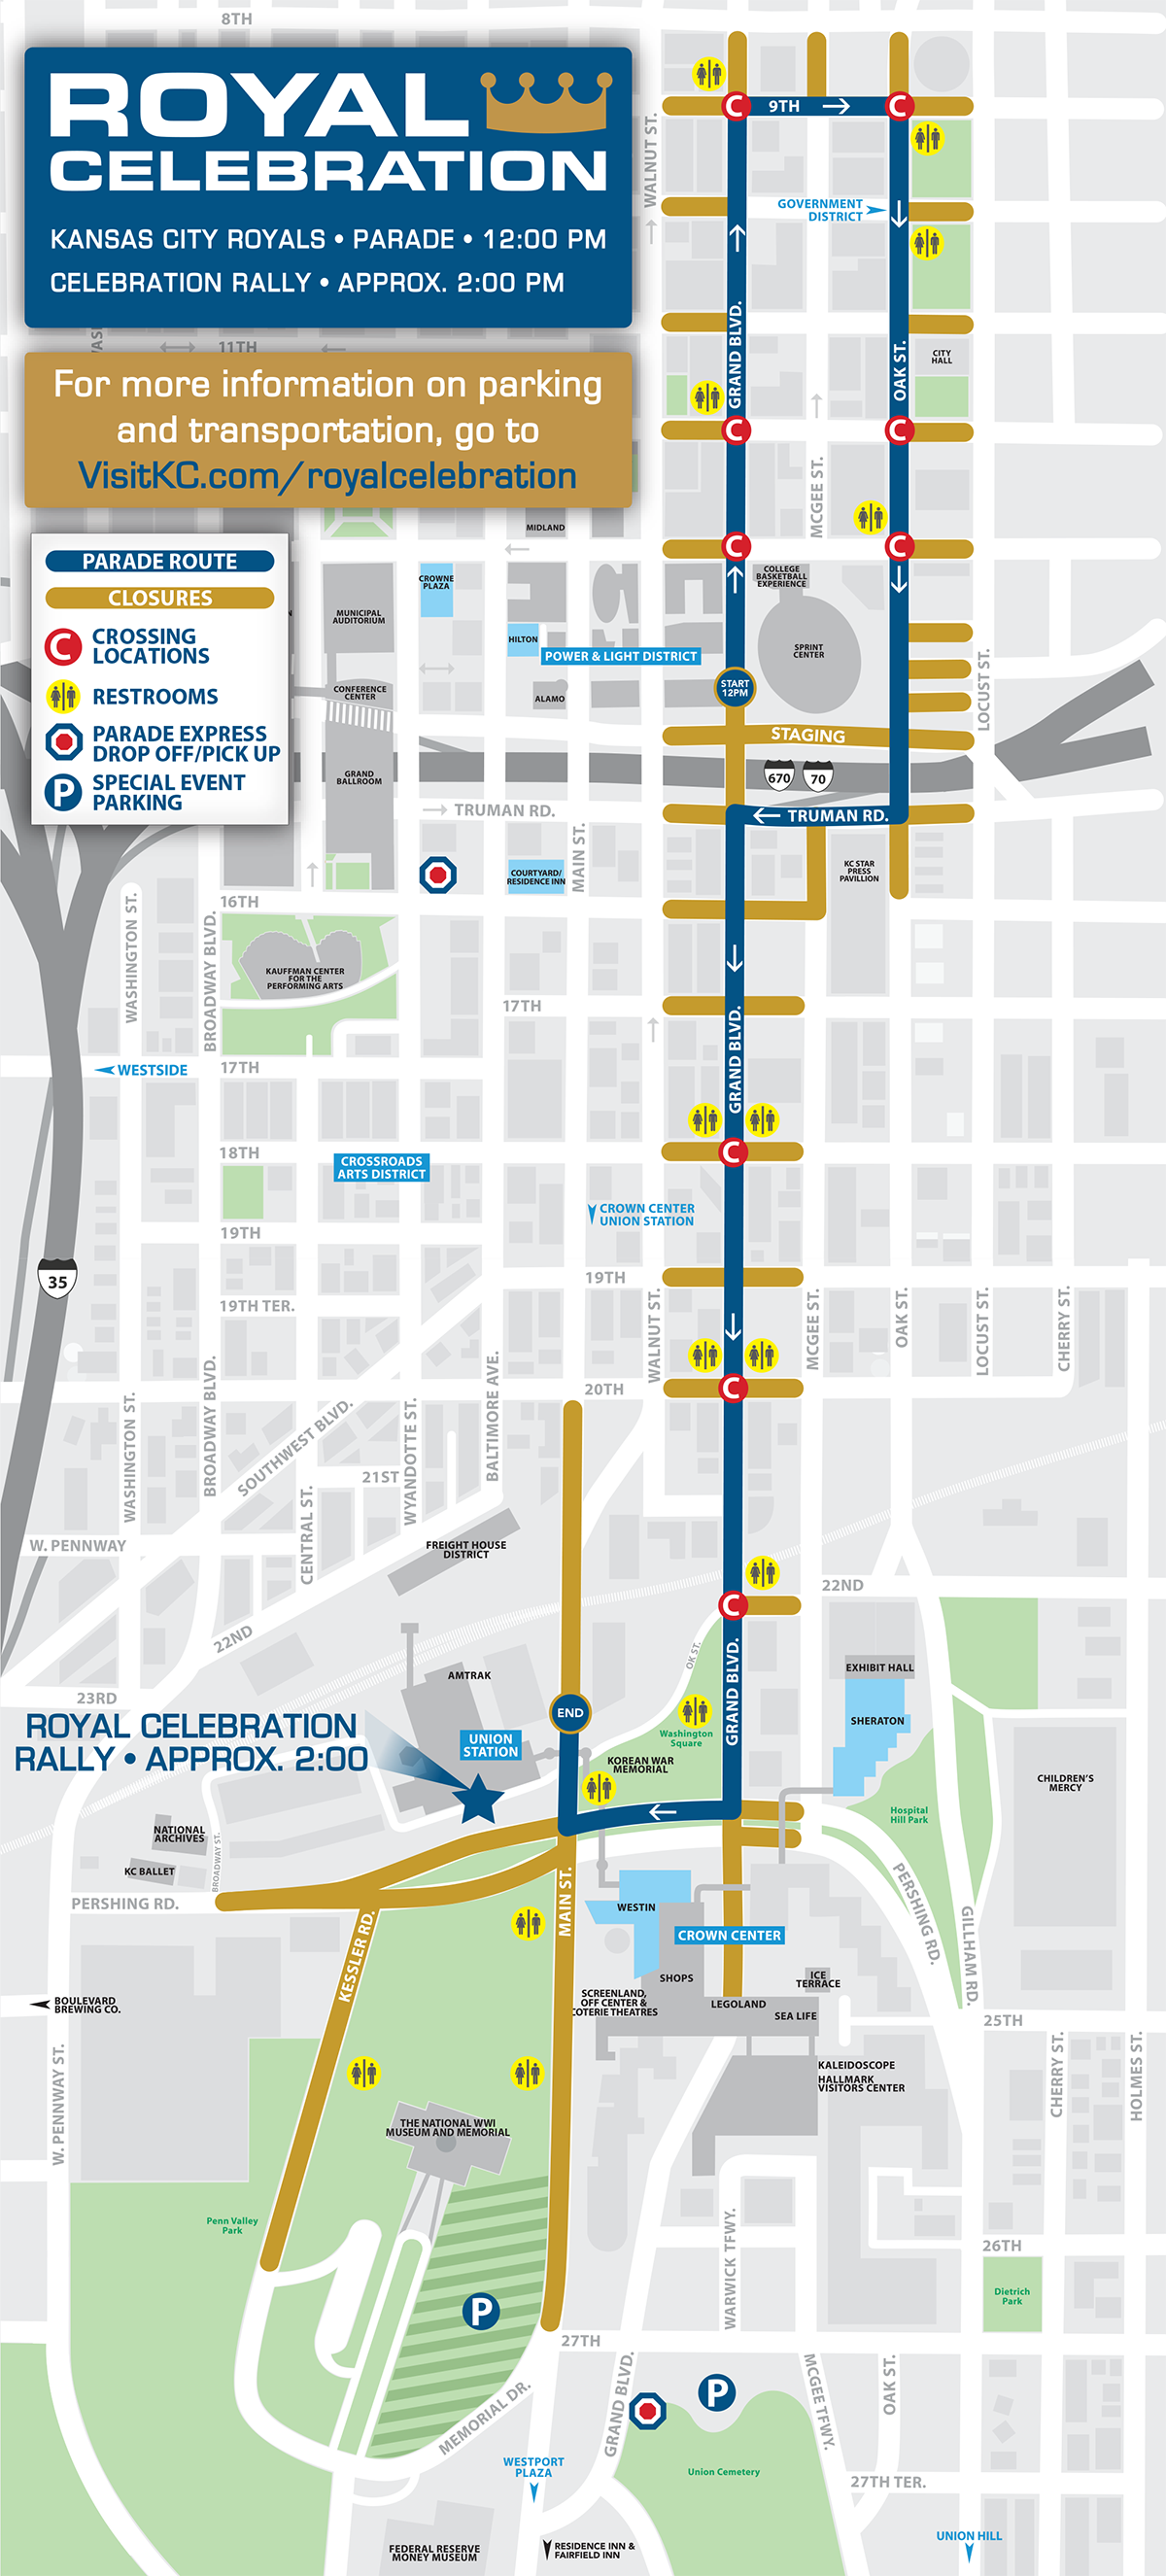 Royal Celebration Parade Route